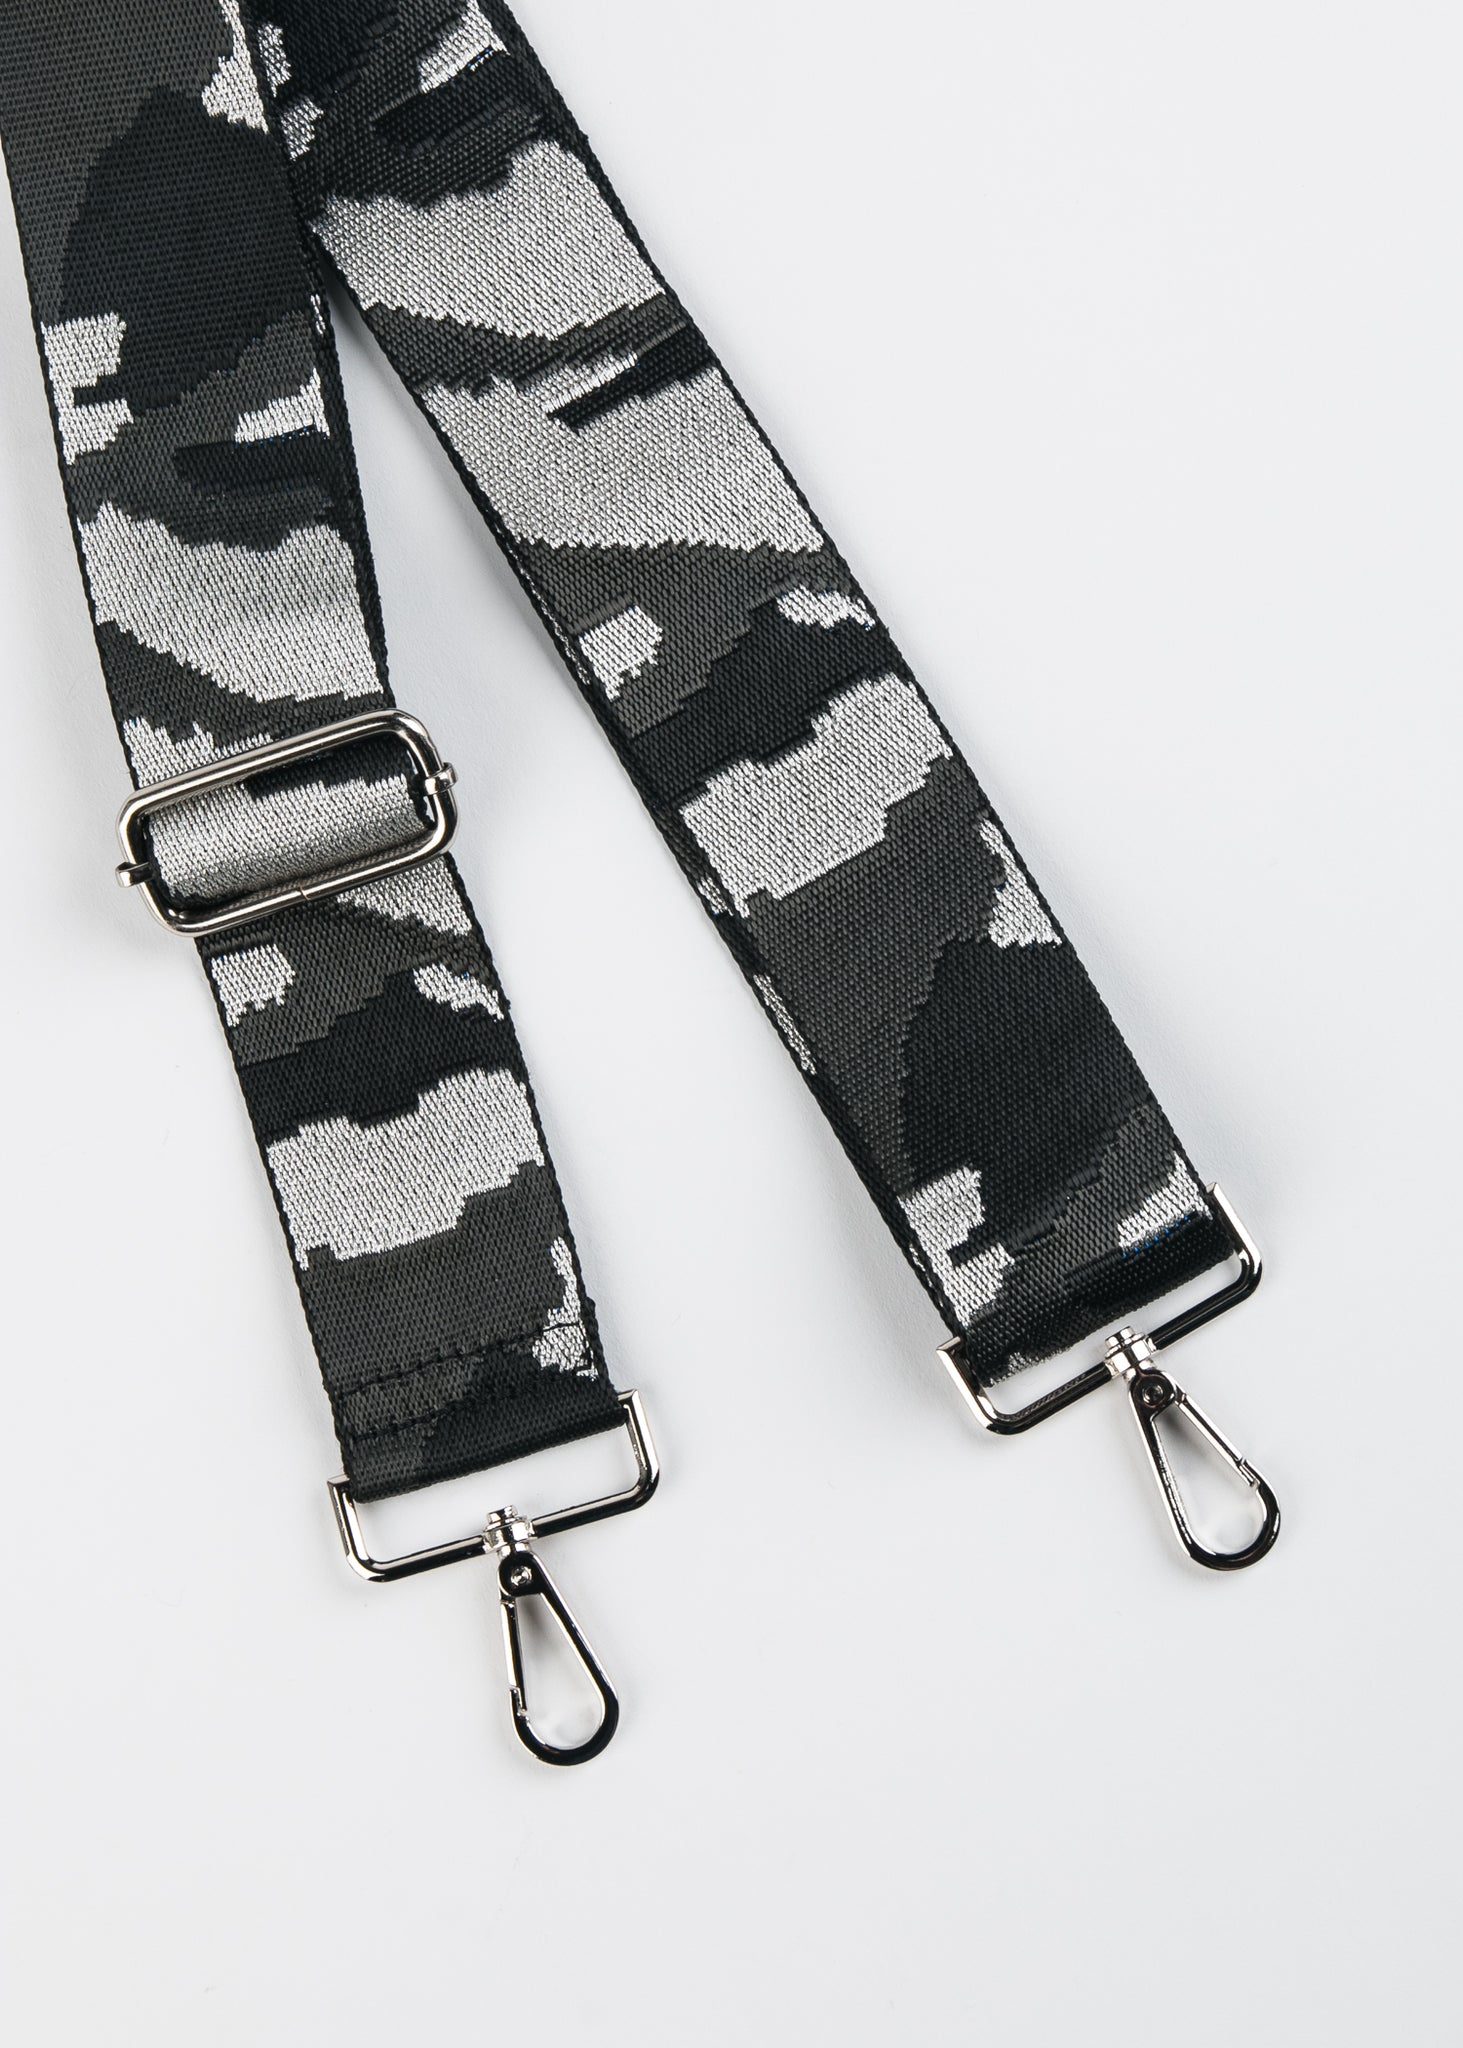 ADJUSTABLE CAMO PRINT GUITAR STRAP